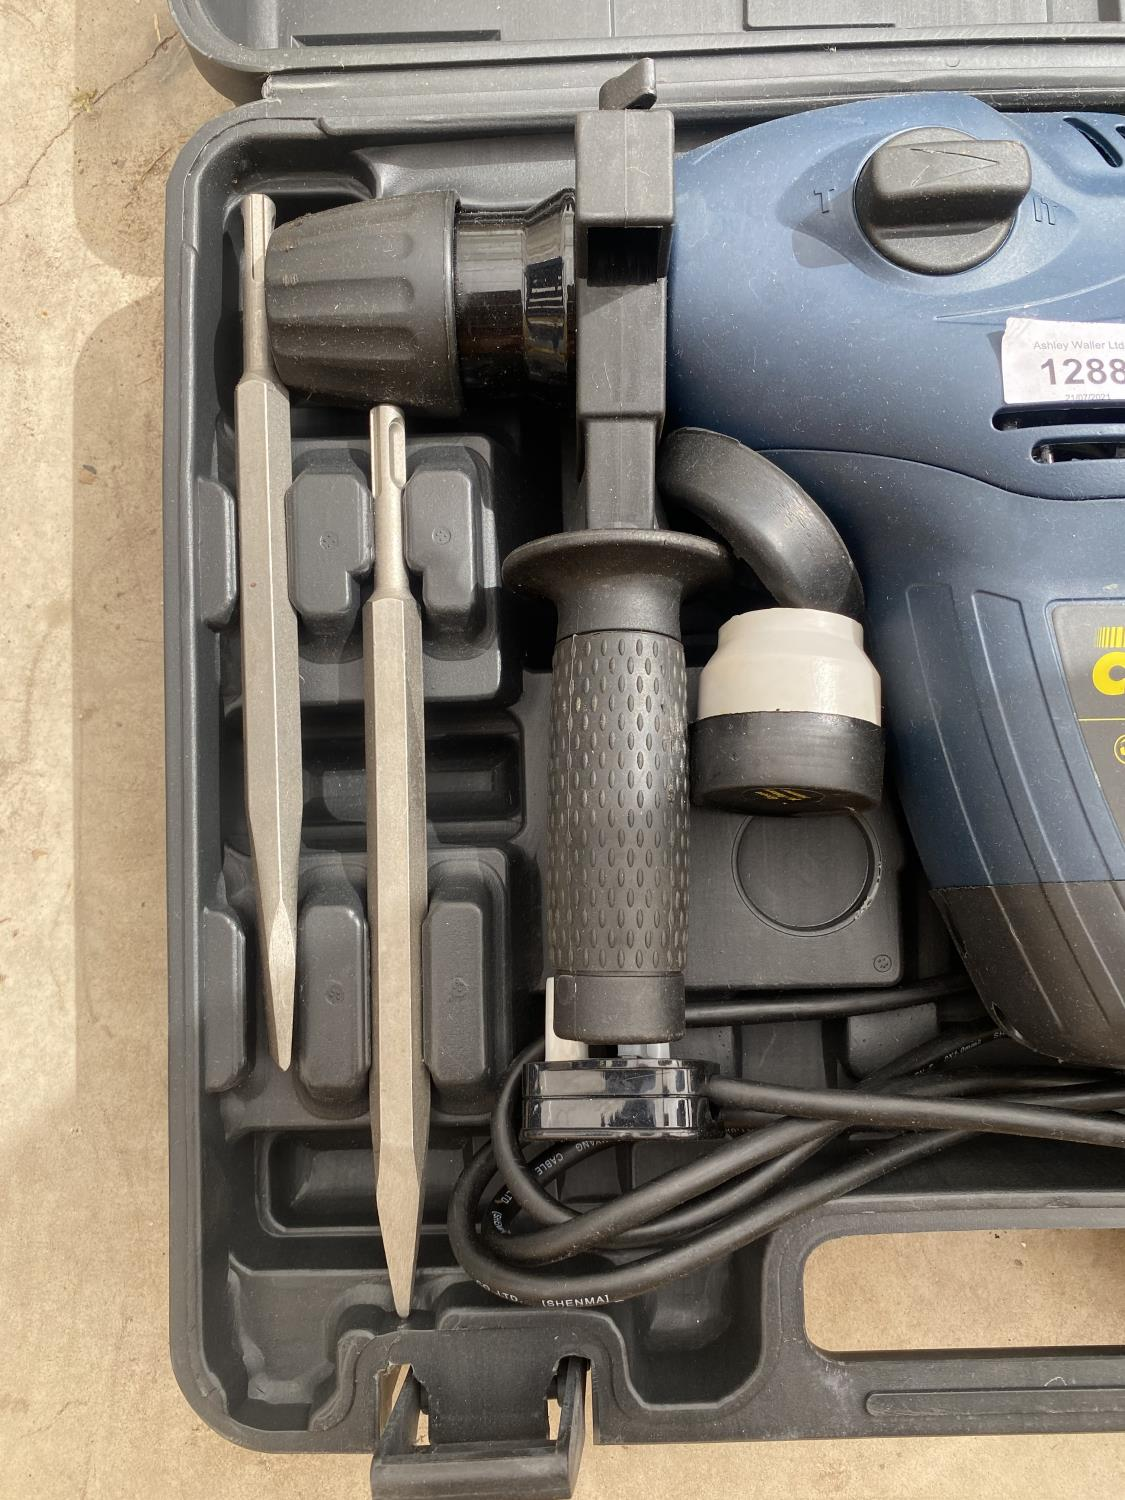 A POWER CRAFT SDS DRILL WITH VARIOUS SDS DRILL BITS AND R/PLUGS - Image 3 of 4